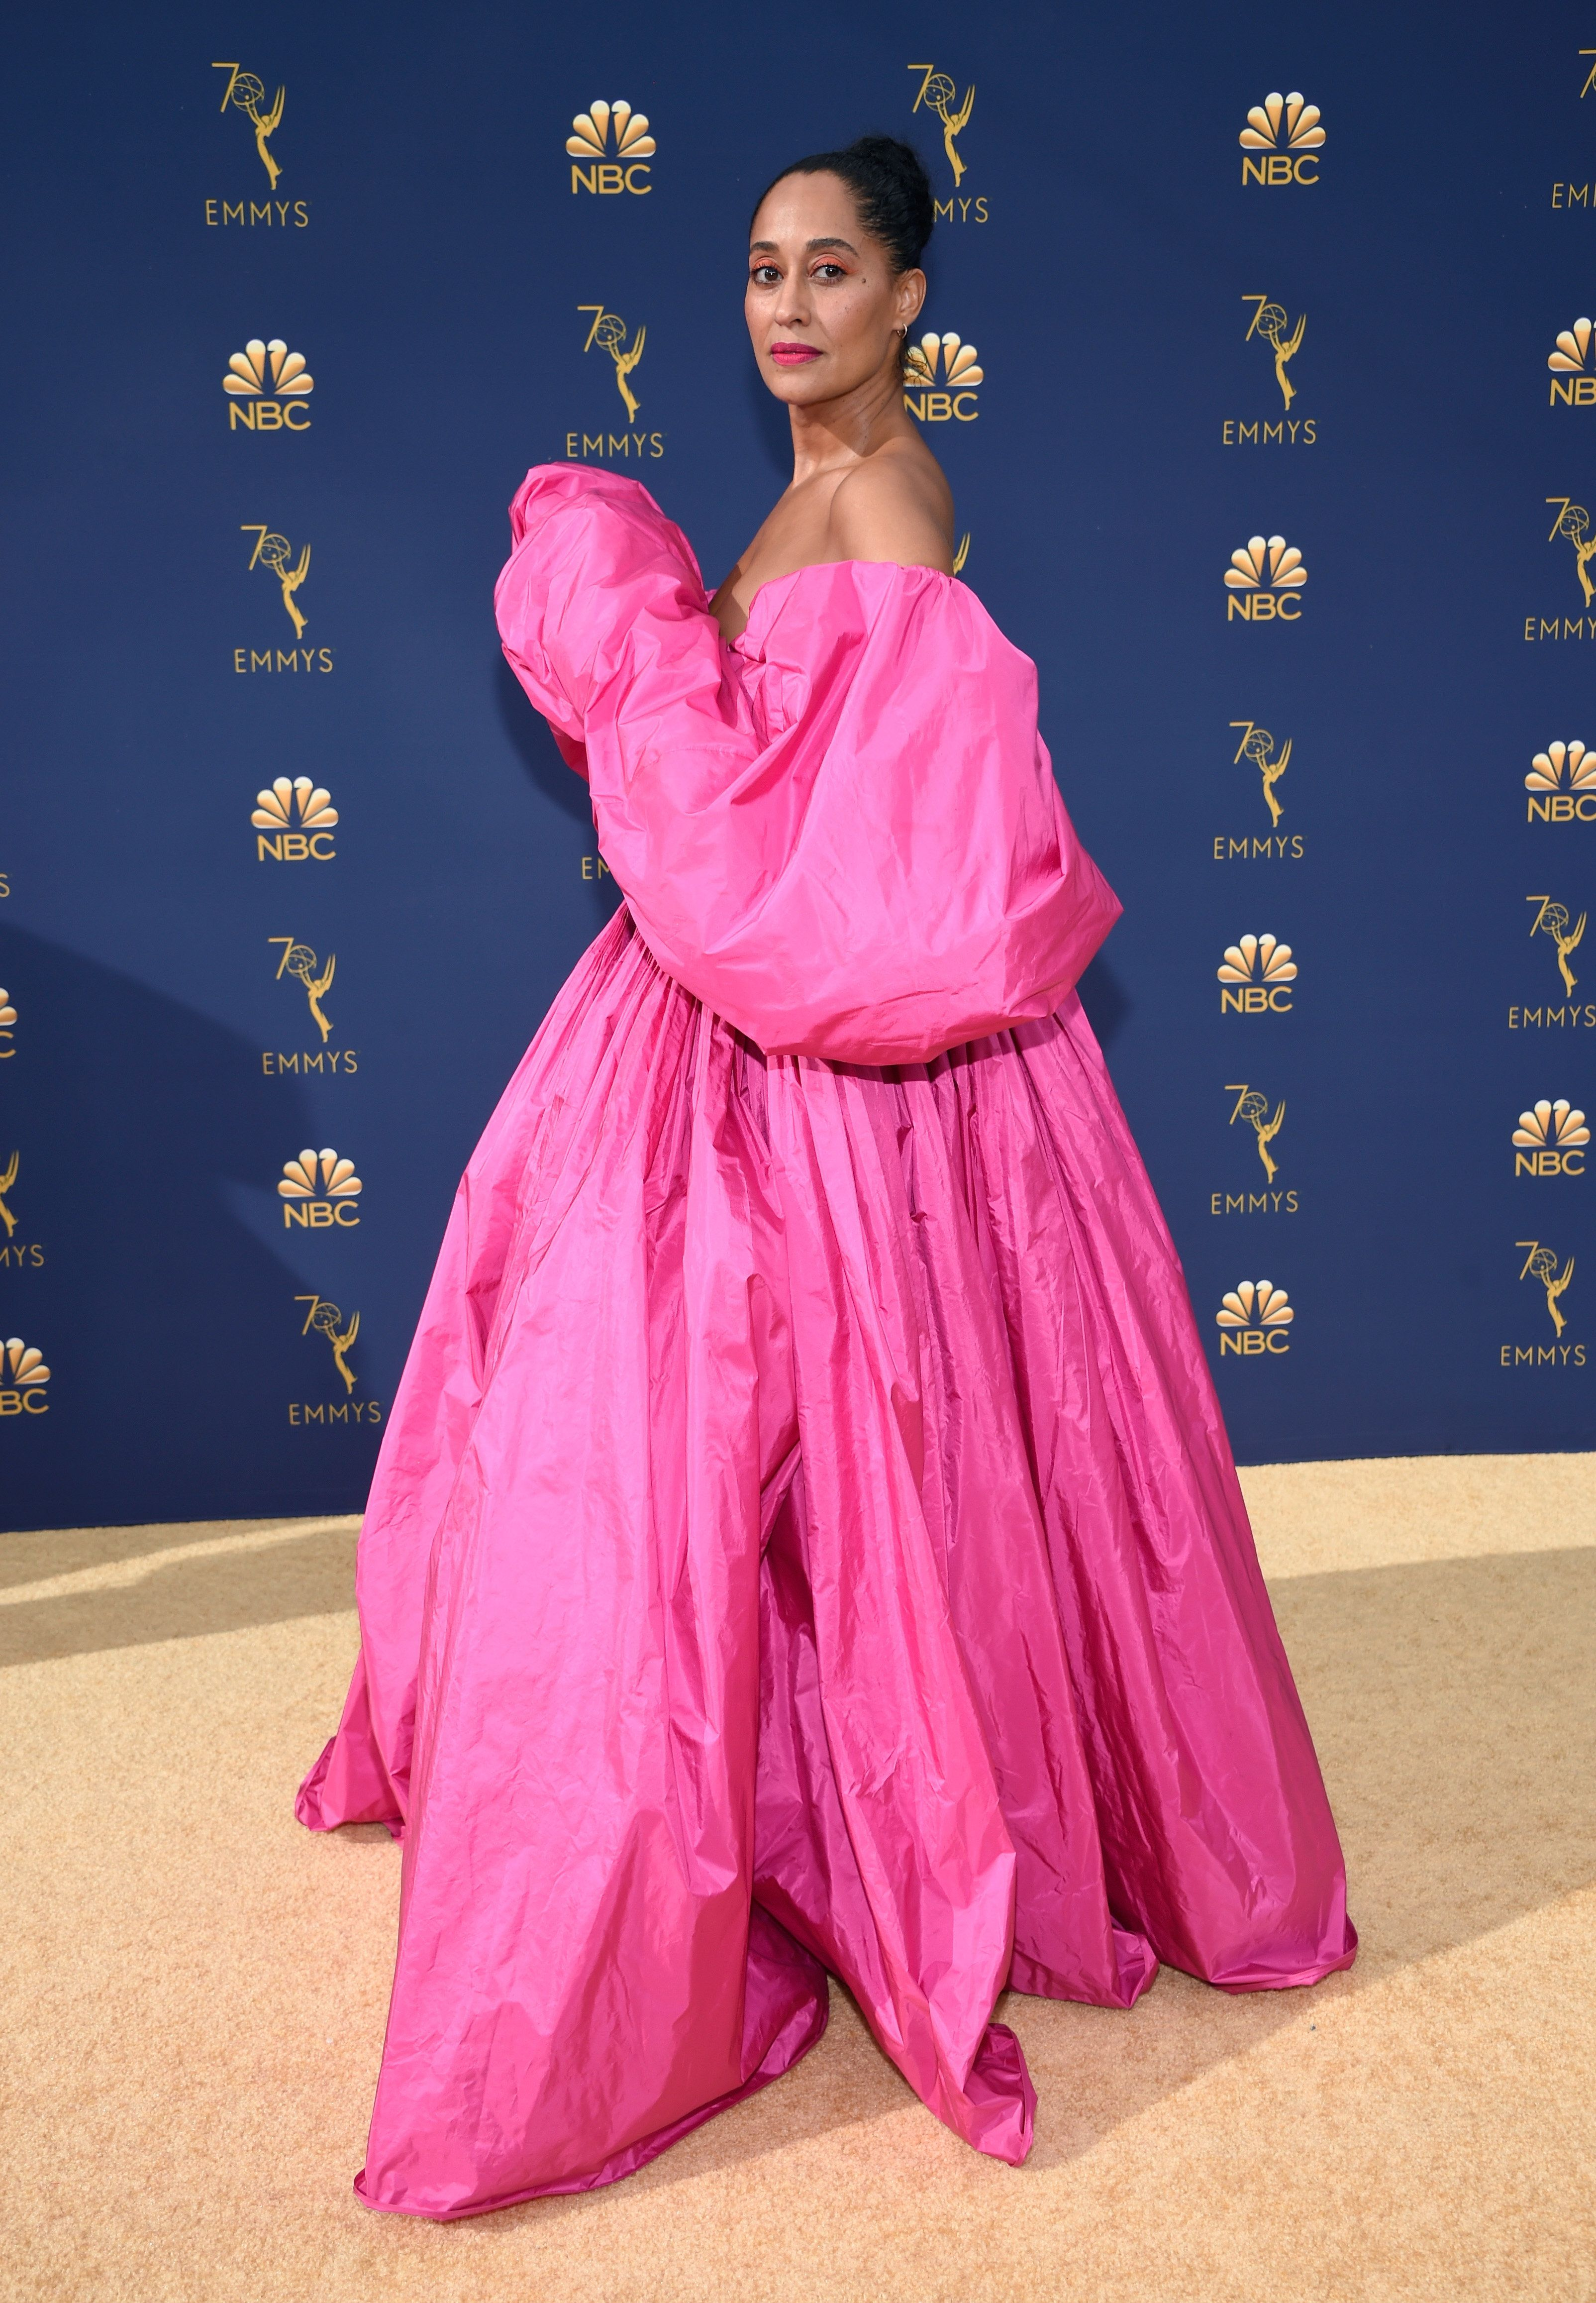 Tracee Ellis Ross Slayed The Most Over-The-Top Look At The 2018 Emmy